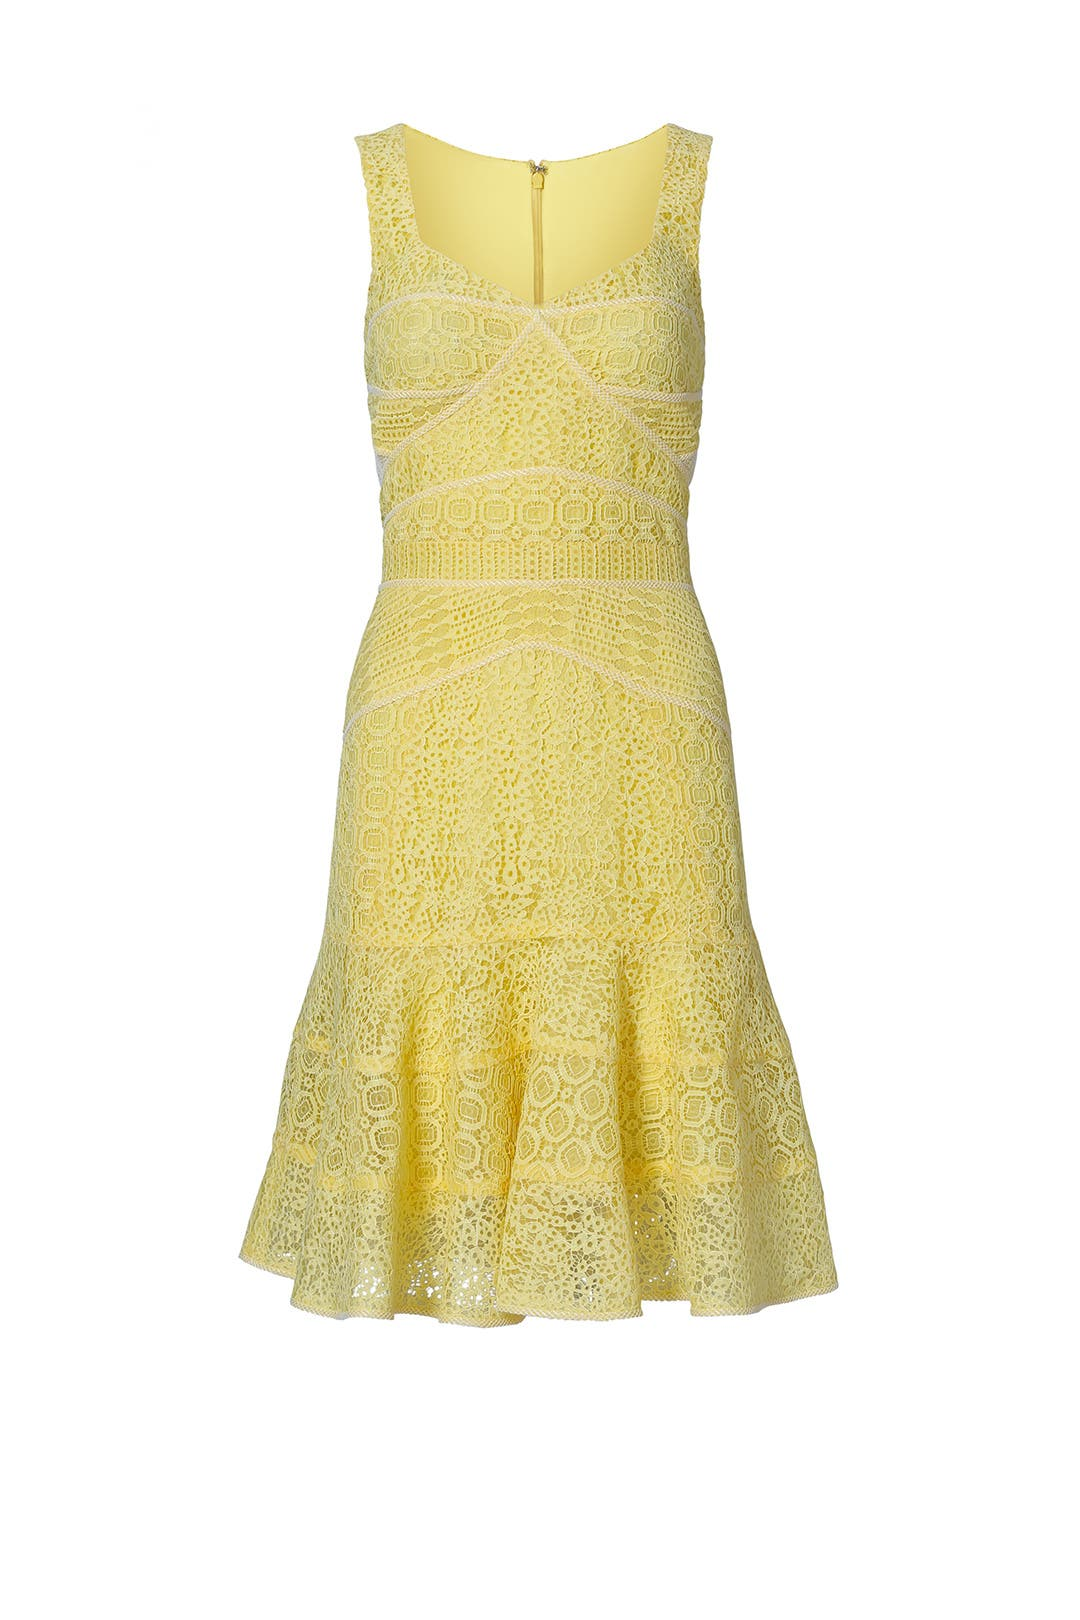 Yellow Lace Sweetheart Dress by J. Mendel for $470 - $490 | Rent the ...